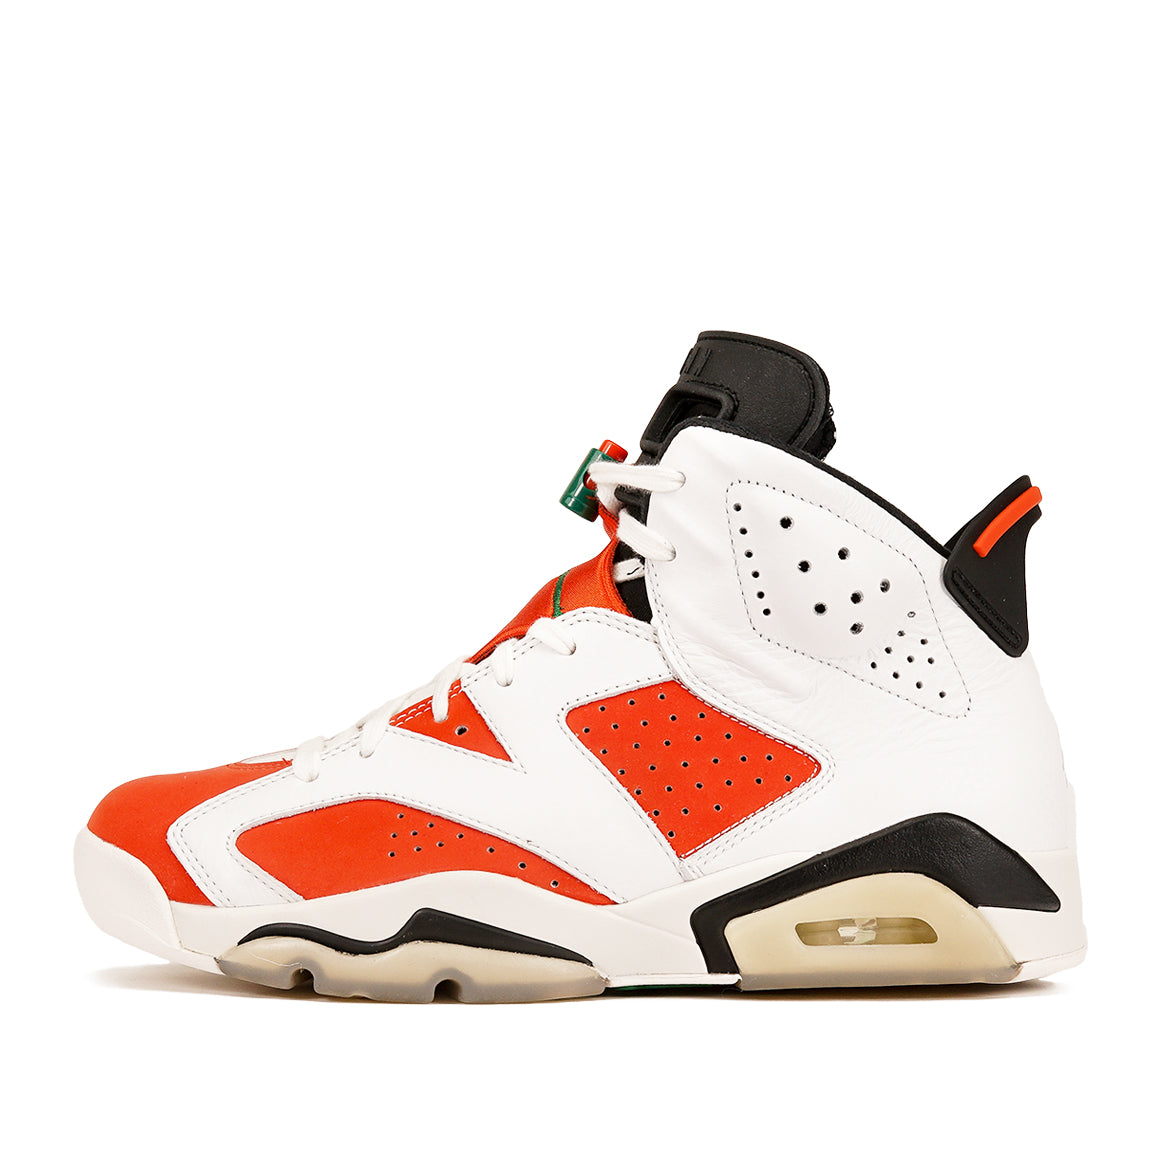 0790704bae43 AIR JORDAN 6 RETRO